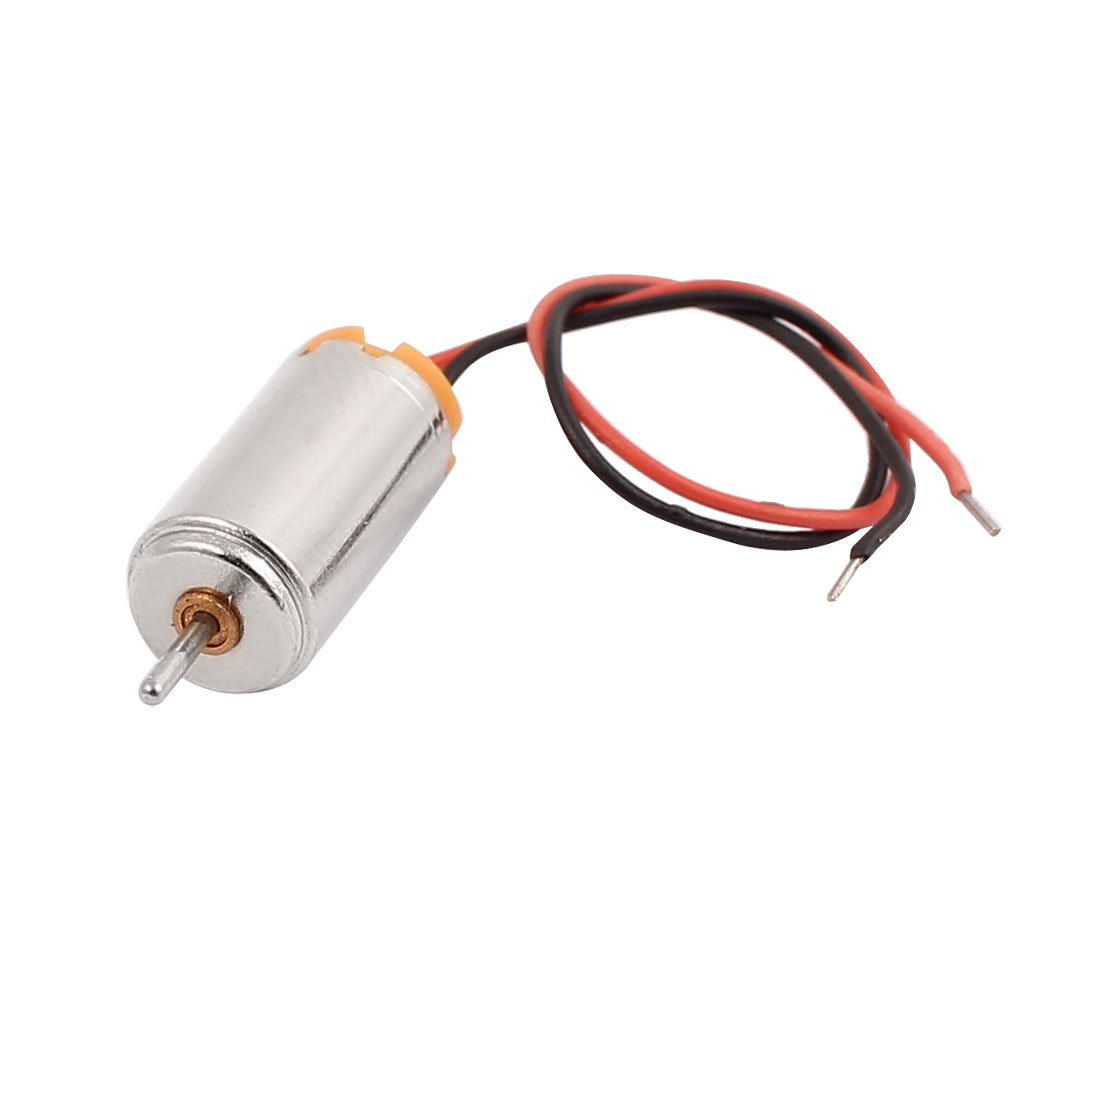 DC1.5-4.5V 44273RPM Large Torque Micro Coreless DC Motor for Airplane Model